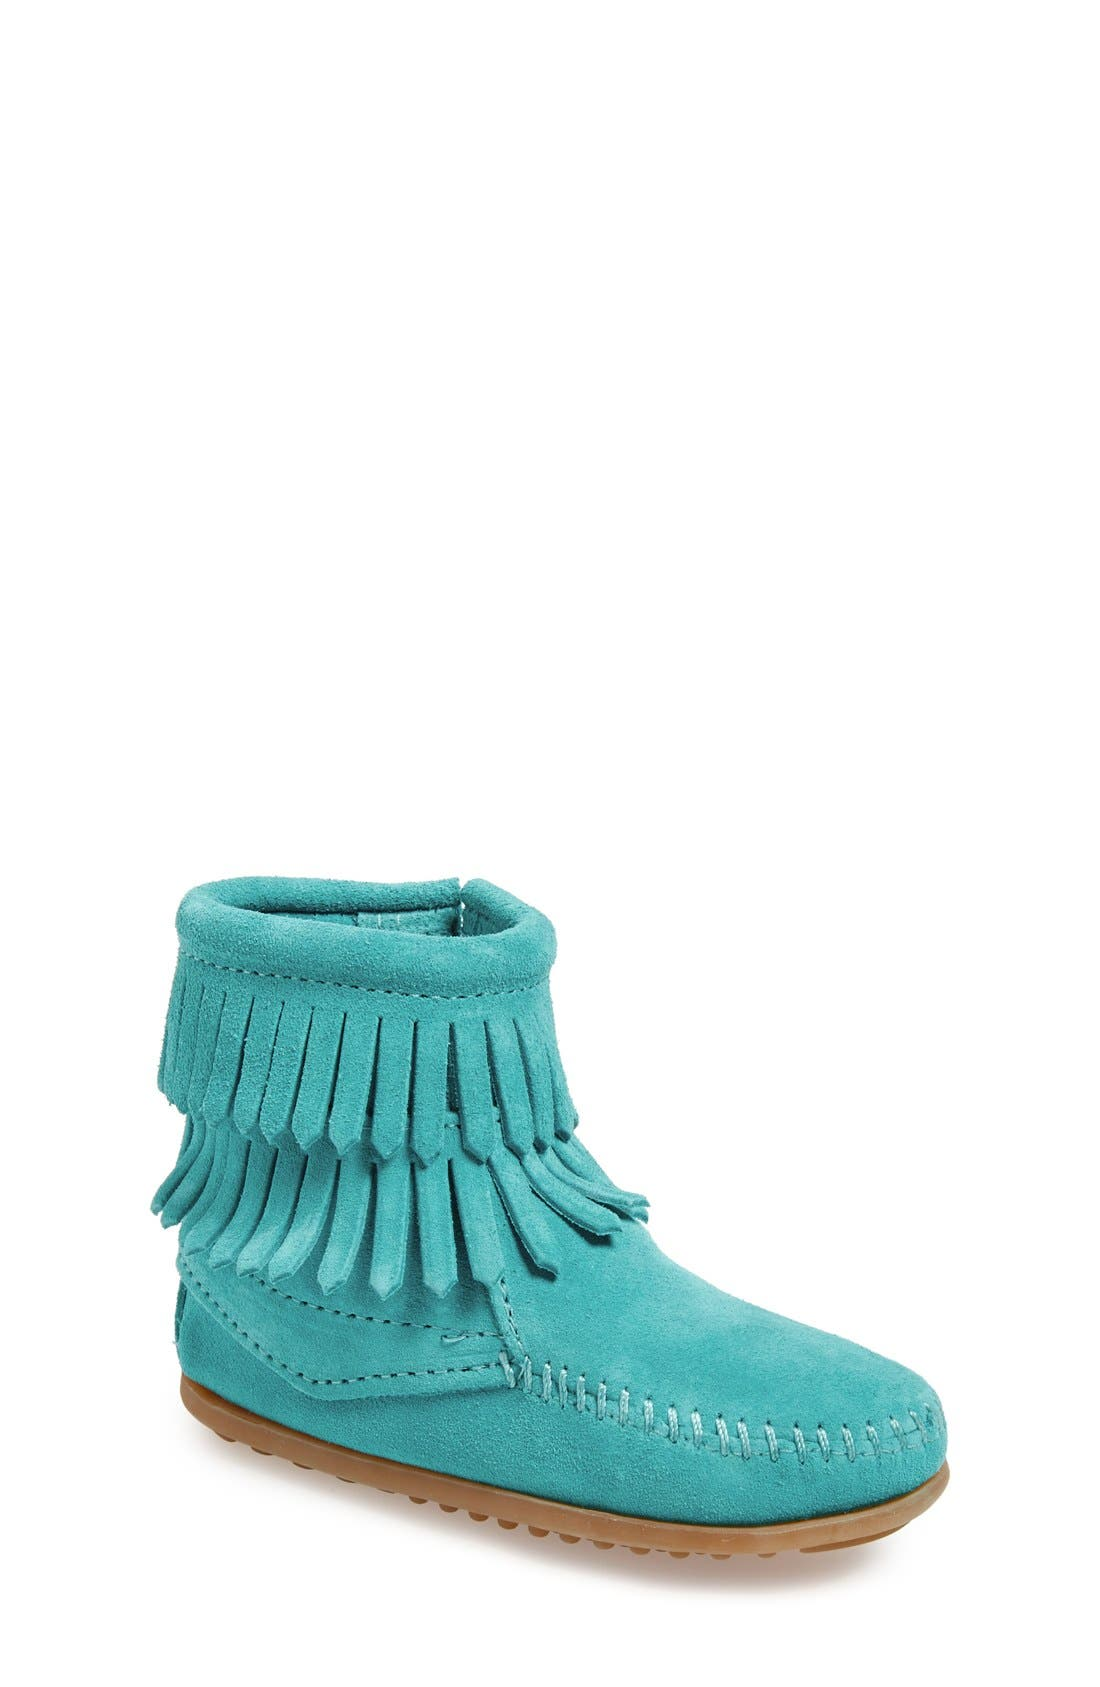 Minnetonka 'Double Fringe' Boot (Walker, Toddler, Little Kid & Big Kid)